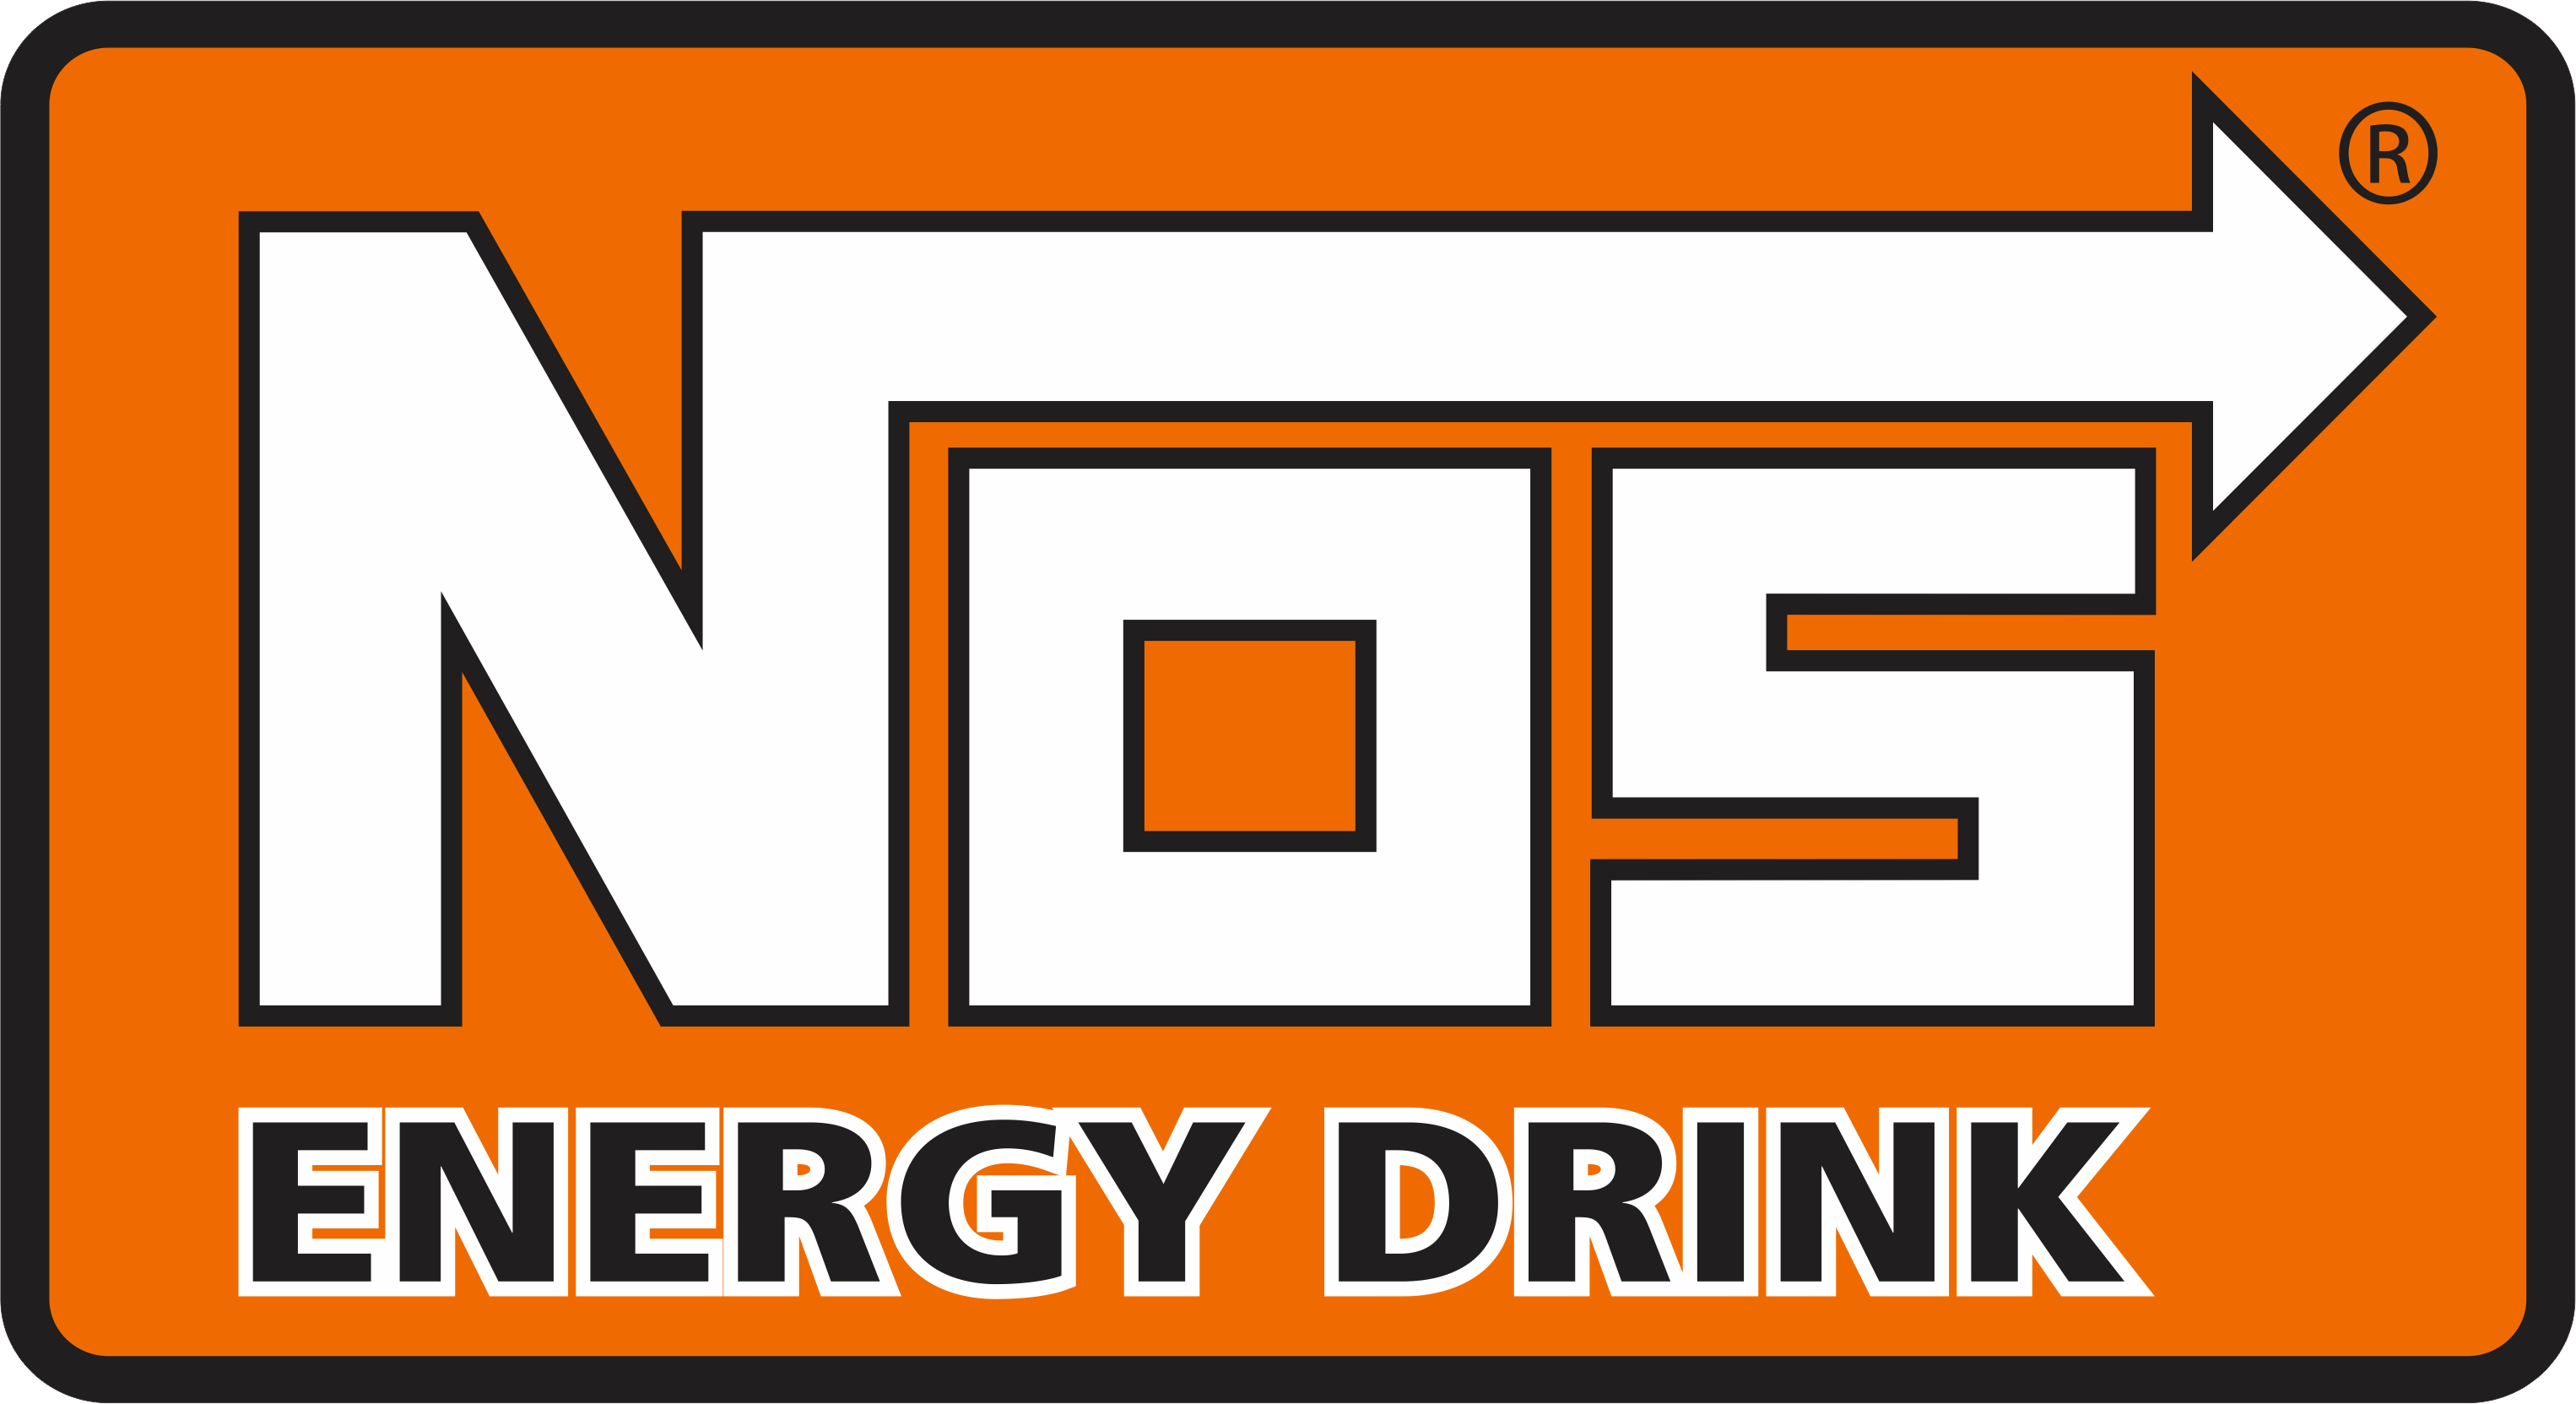 Filename: LOGO-NOS-ENERGY-DRINK-OFFICIAL.png - Nos PNG